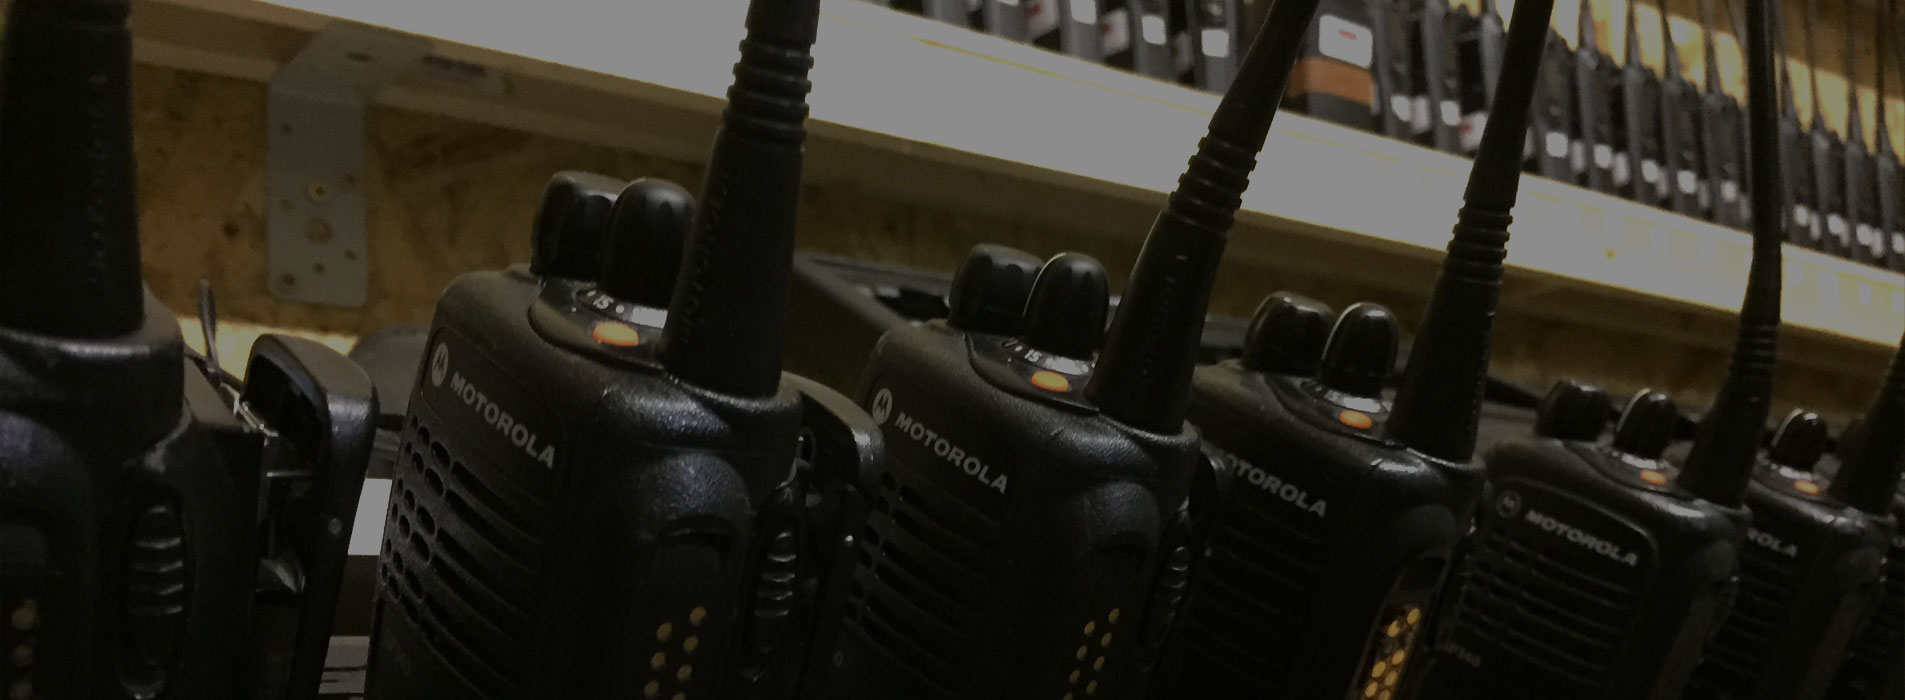 walkie talkies photo